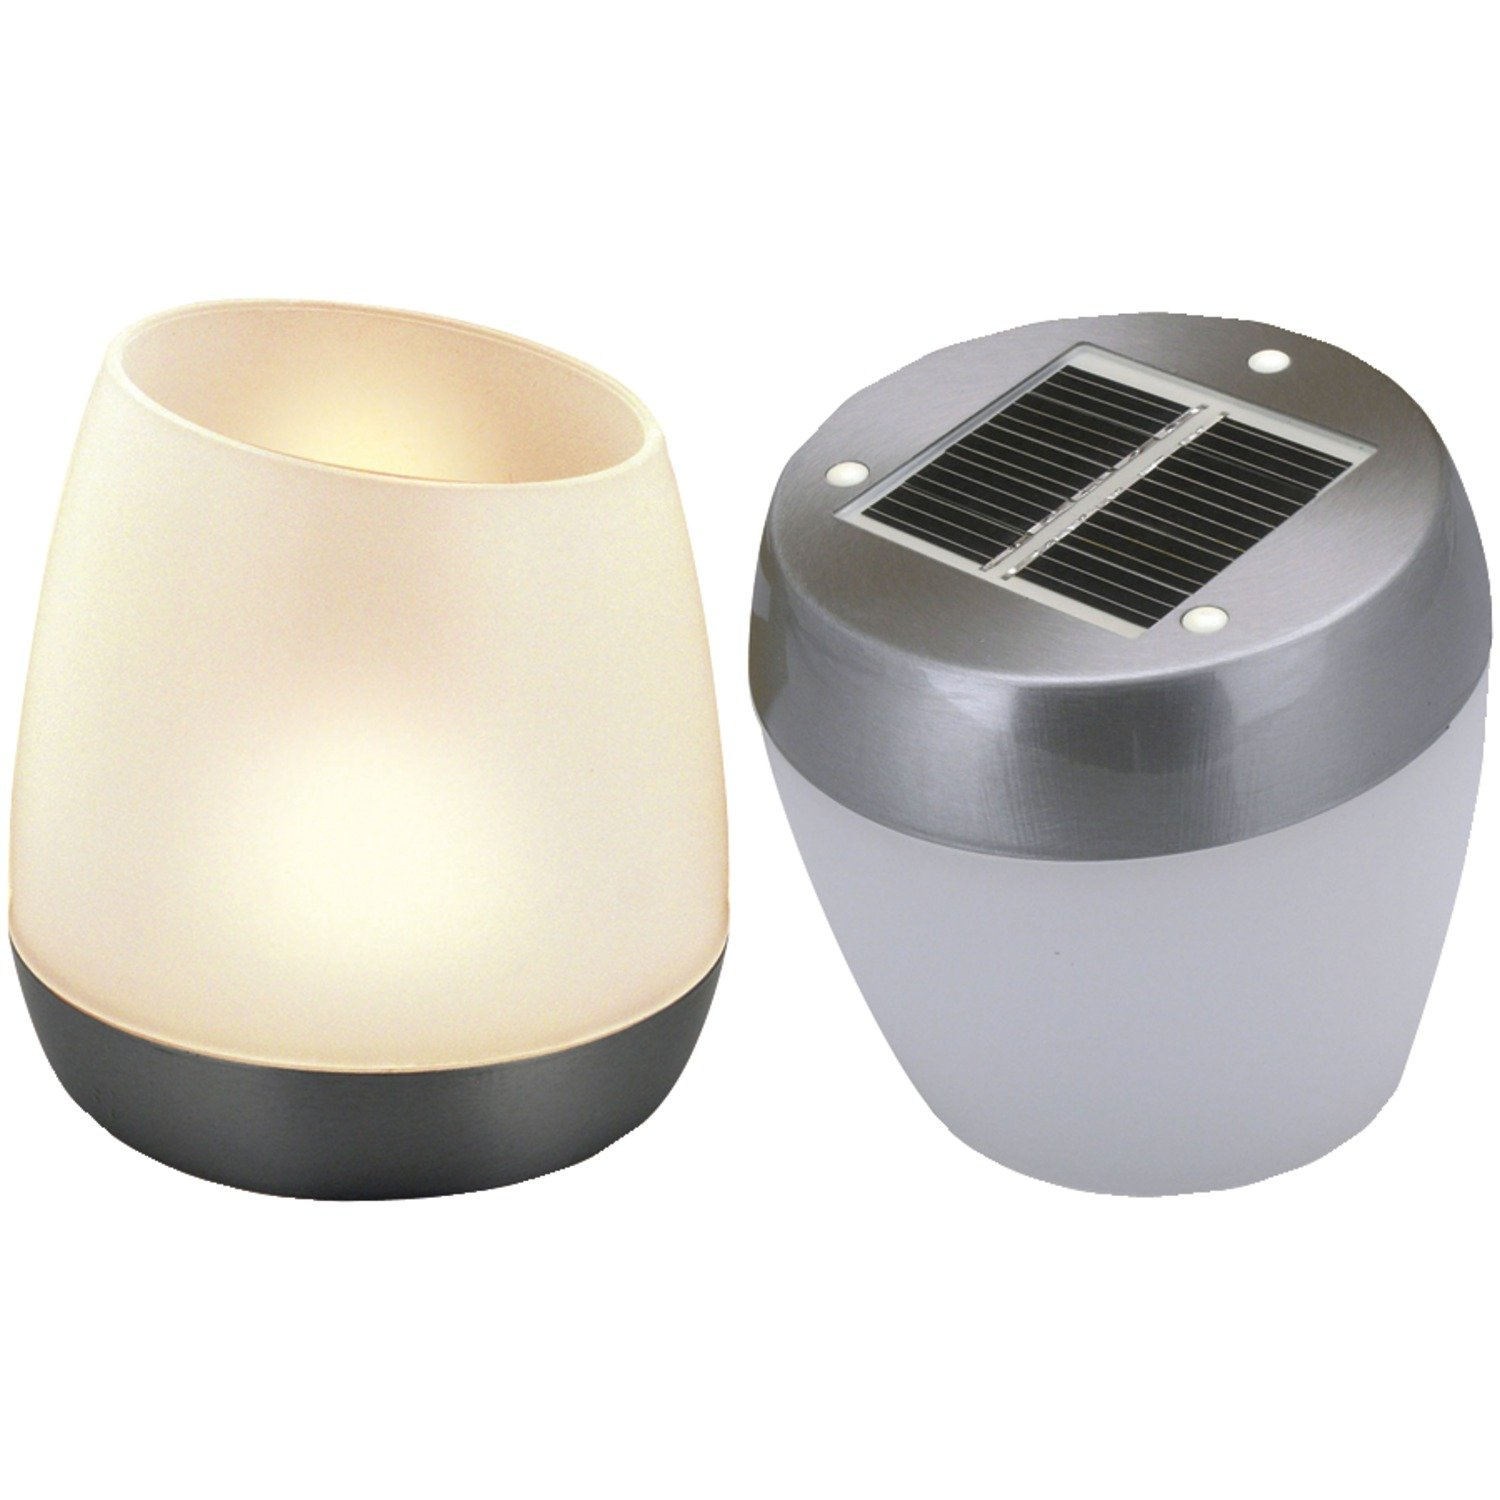 P3 P7615 Flip 'N Charge Candle